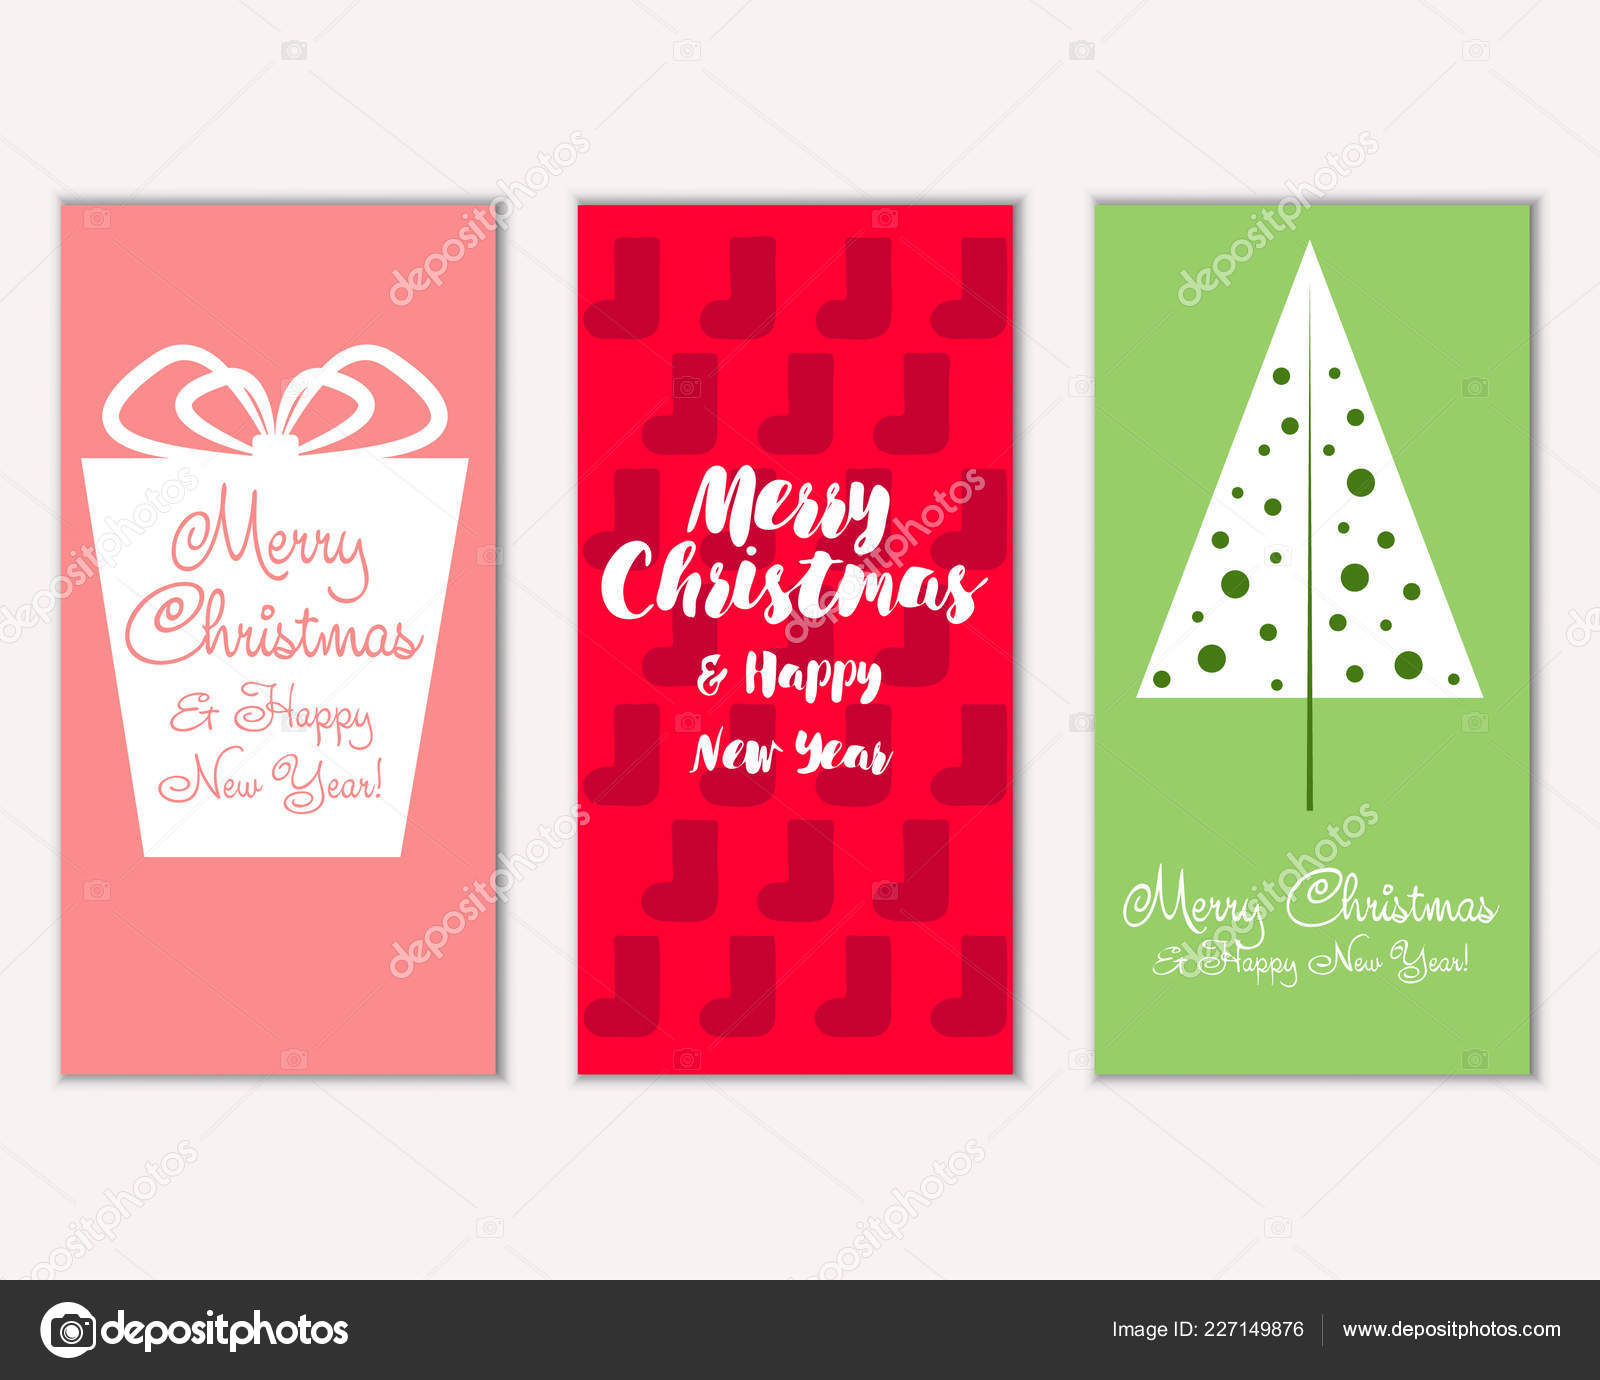 merry christmas happy new year greeting cards stock vector